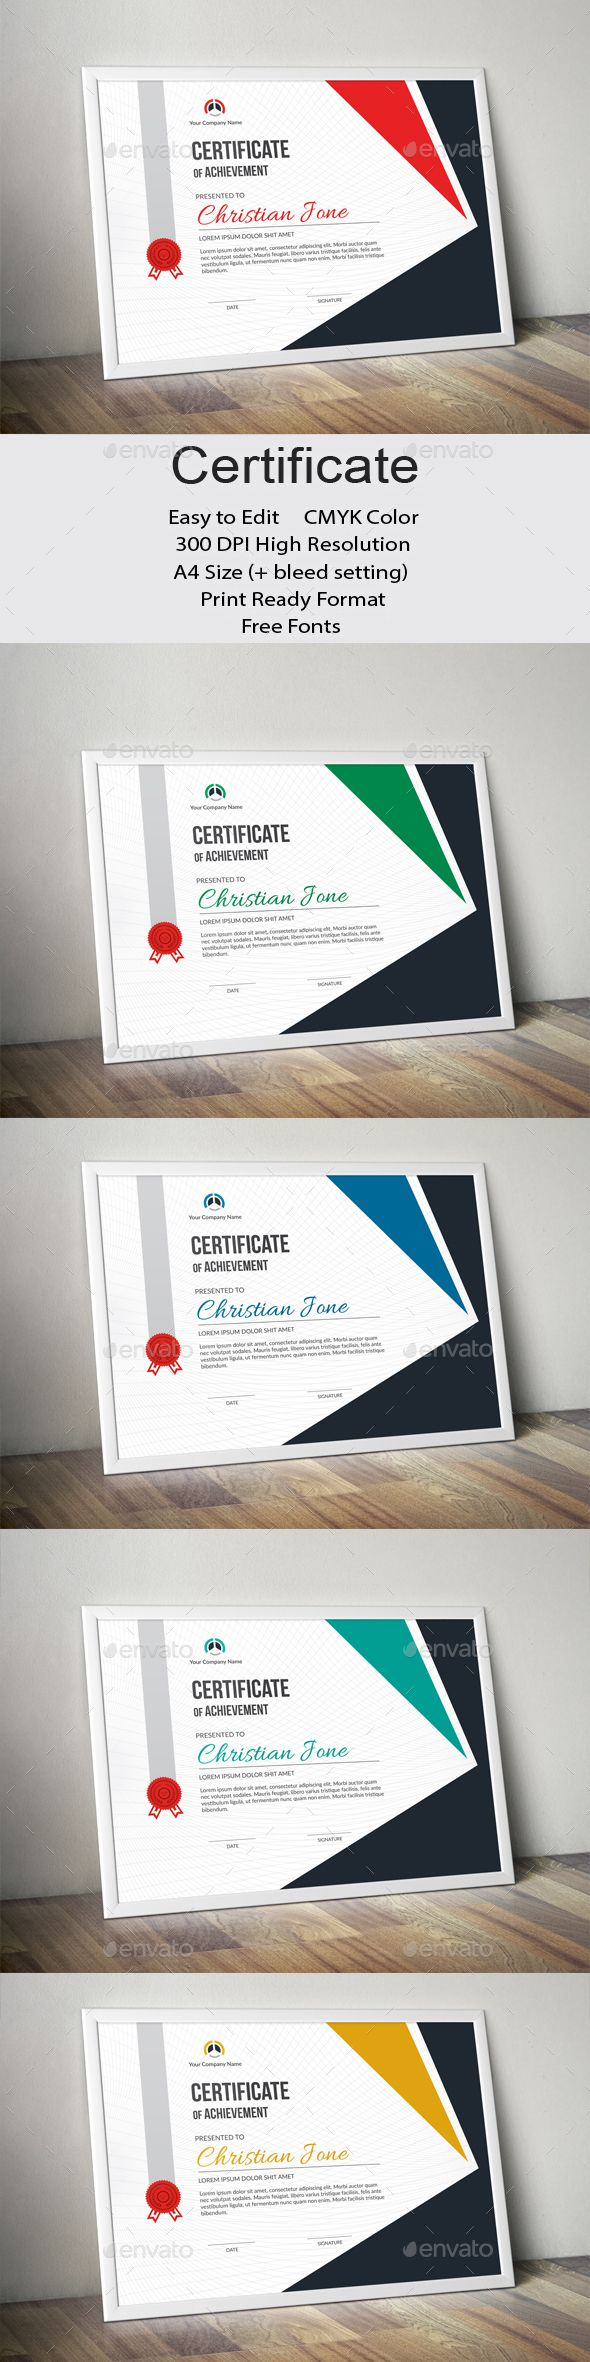 Corporate Certificate Design Template - Certificates Stationery Dseign Template Vector EPS, AI Illustrator. Download here: https://graphicriver.net/item/certificate/19446460?ref=yinkira